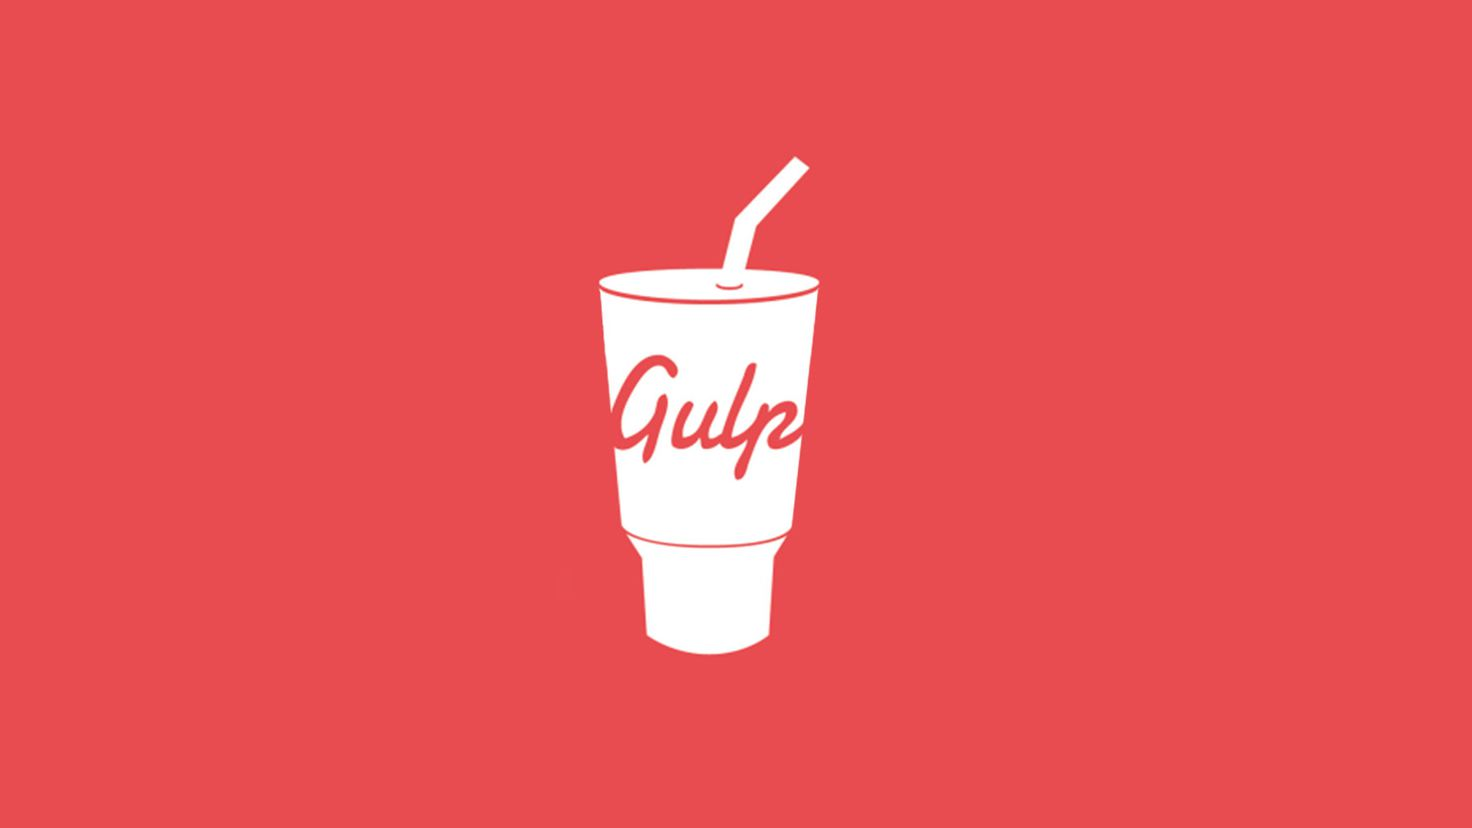 gulp-use-asset -